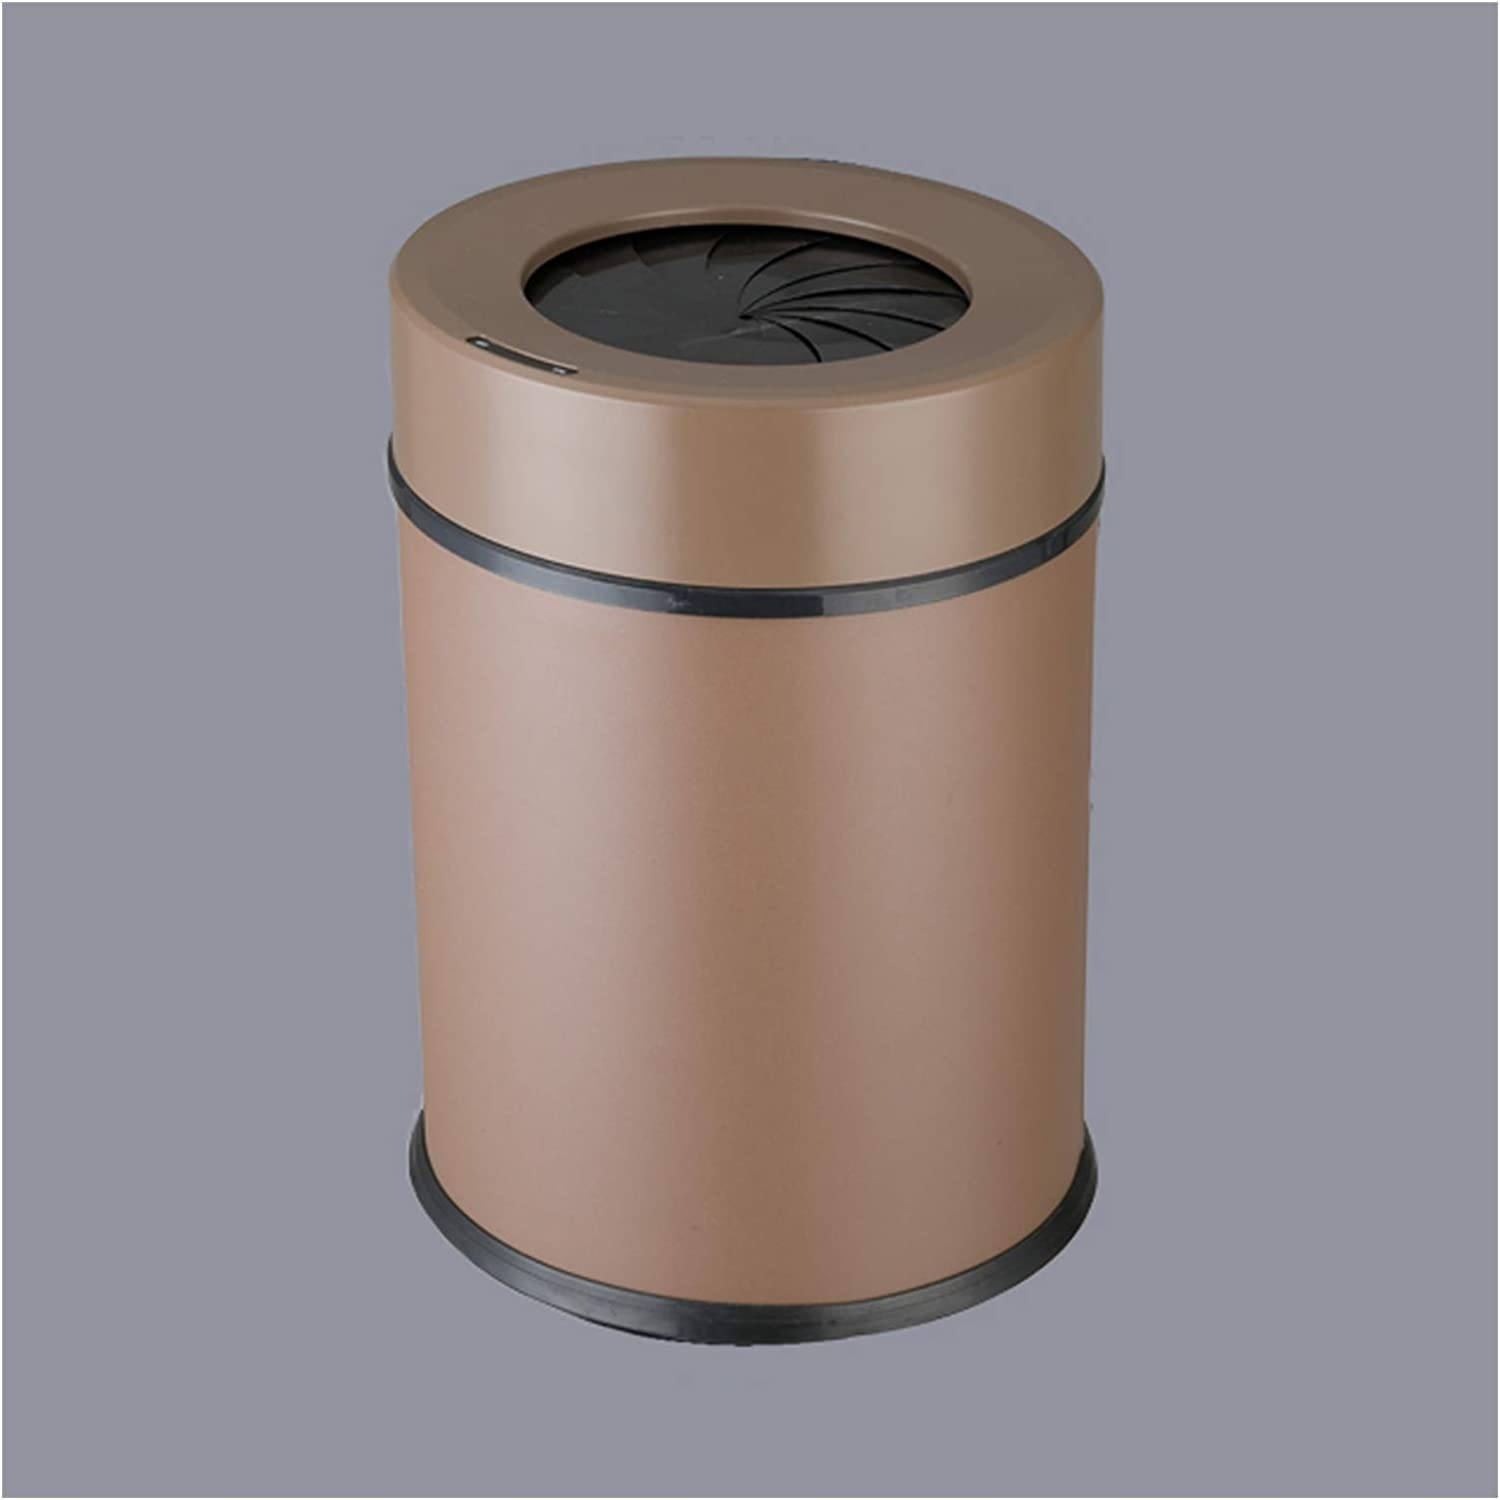 YIFEI2013-SHOP Super special price Trash Can Stainless Sma Sales results No. 1 Steel Household